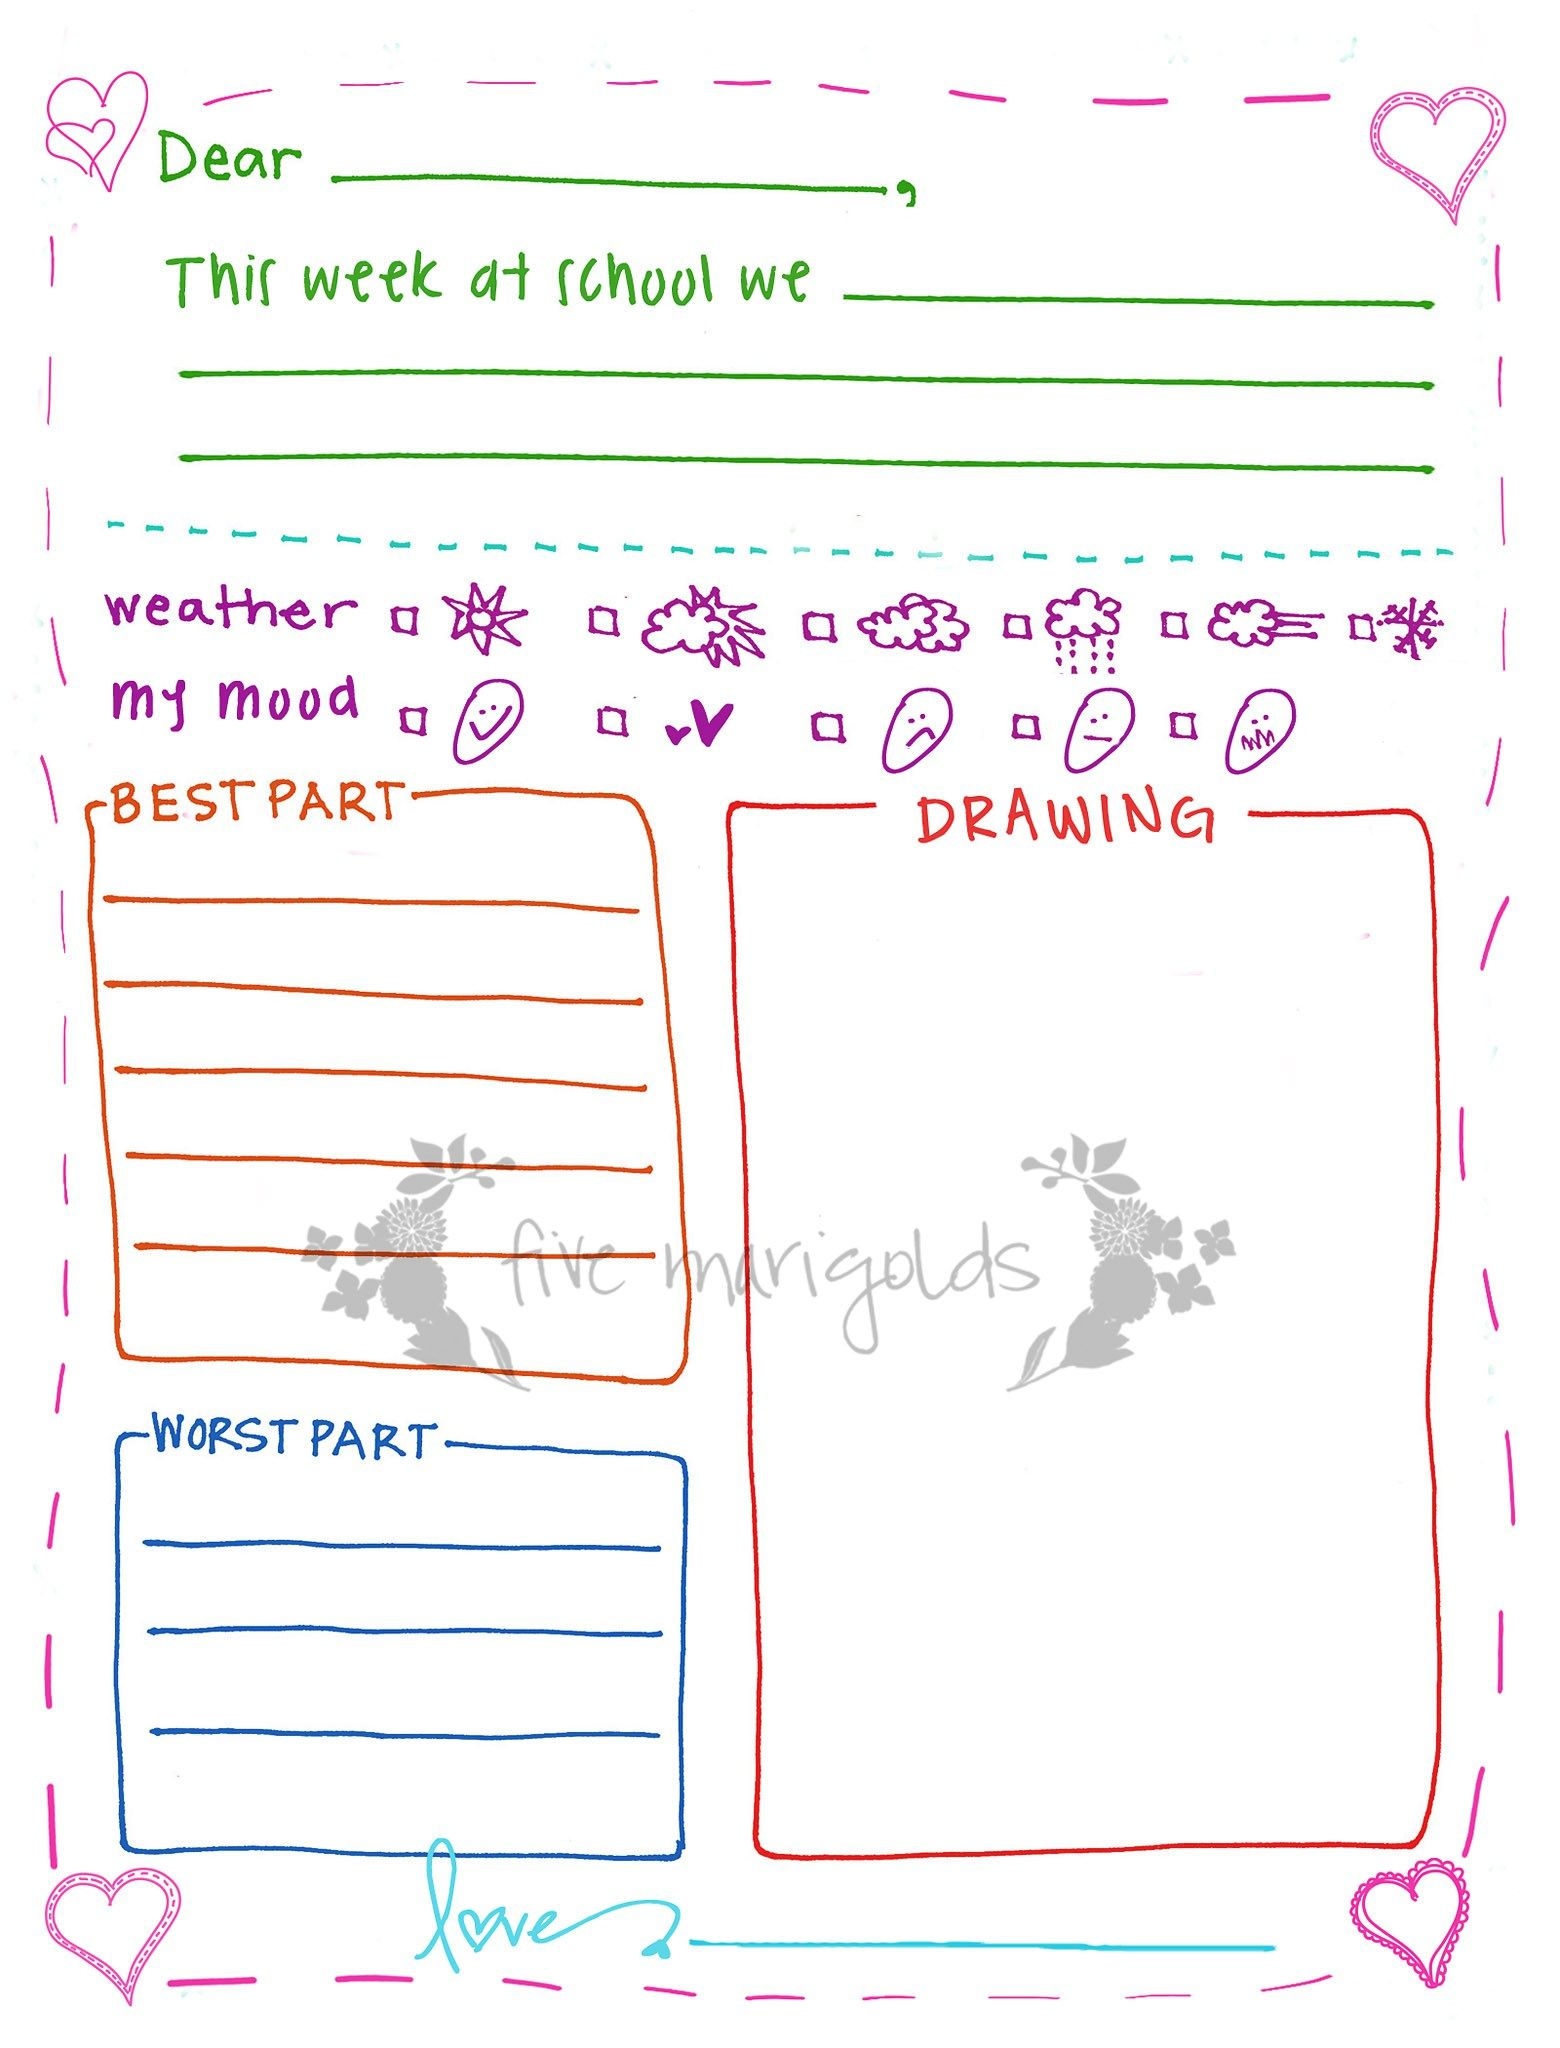 Free Printable Letter Writing Templates For Grandma Pen Pal  Pen